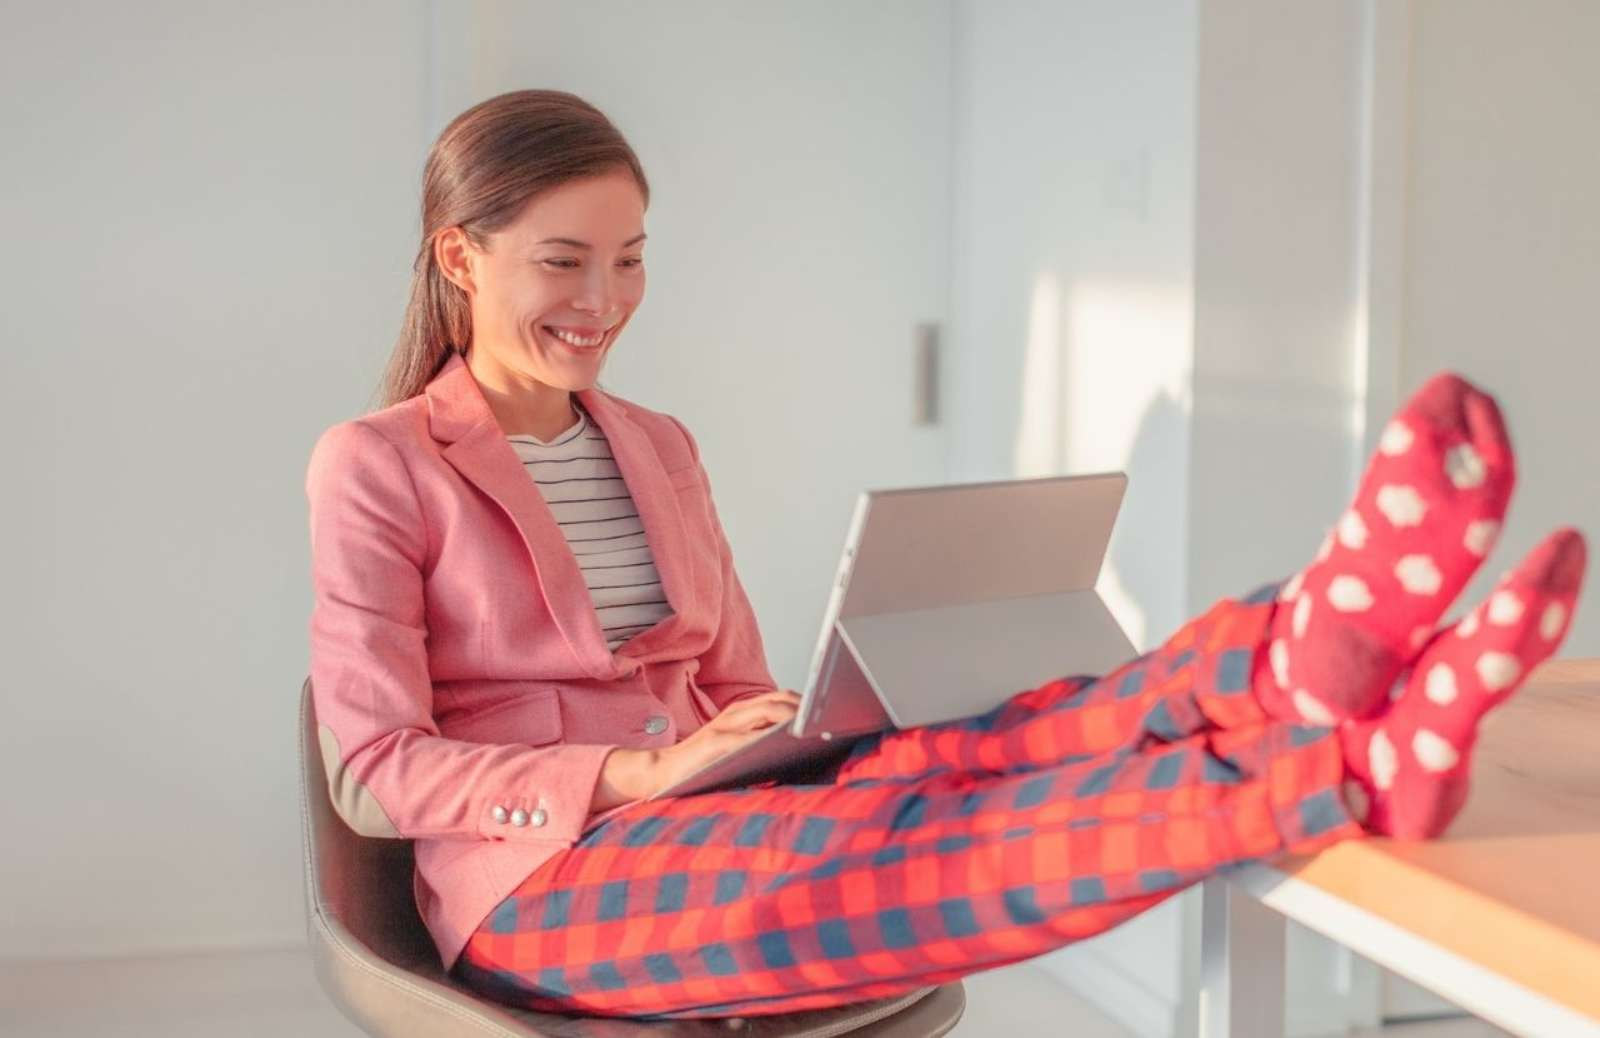 Woman with feet on desk, wearing pajamas, smiling while working on laptop computer